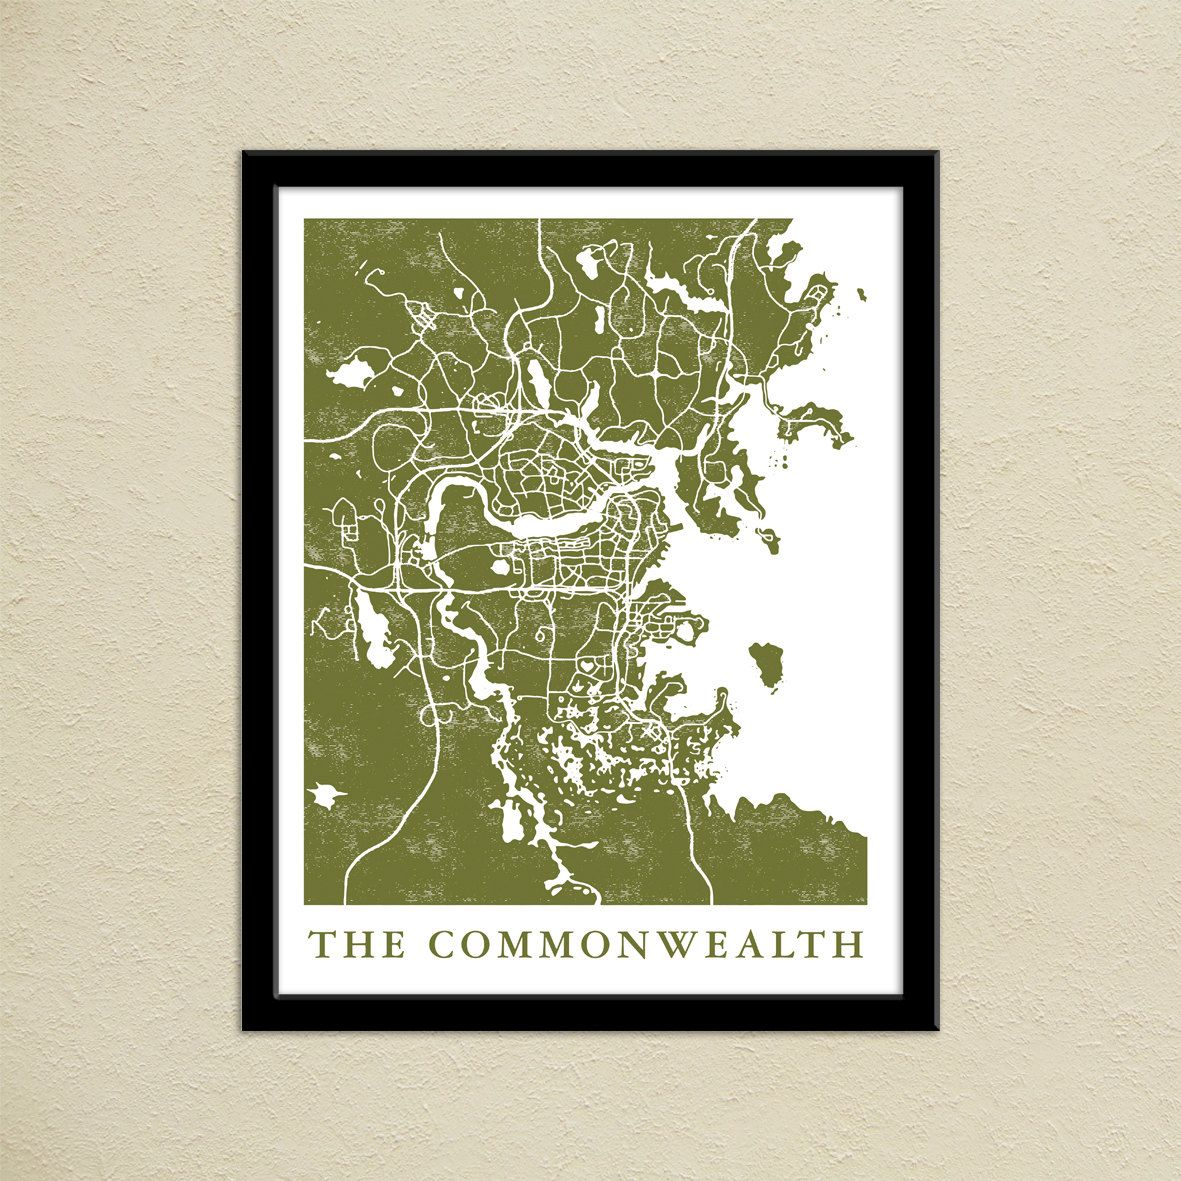 Fallout 4 the commonwealth map print gamer christmas present pidesignprints on etsy fallout 4 the commonwealth map print boston commonwealth map poster gumiabroncs Gallery